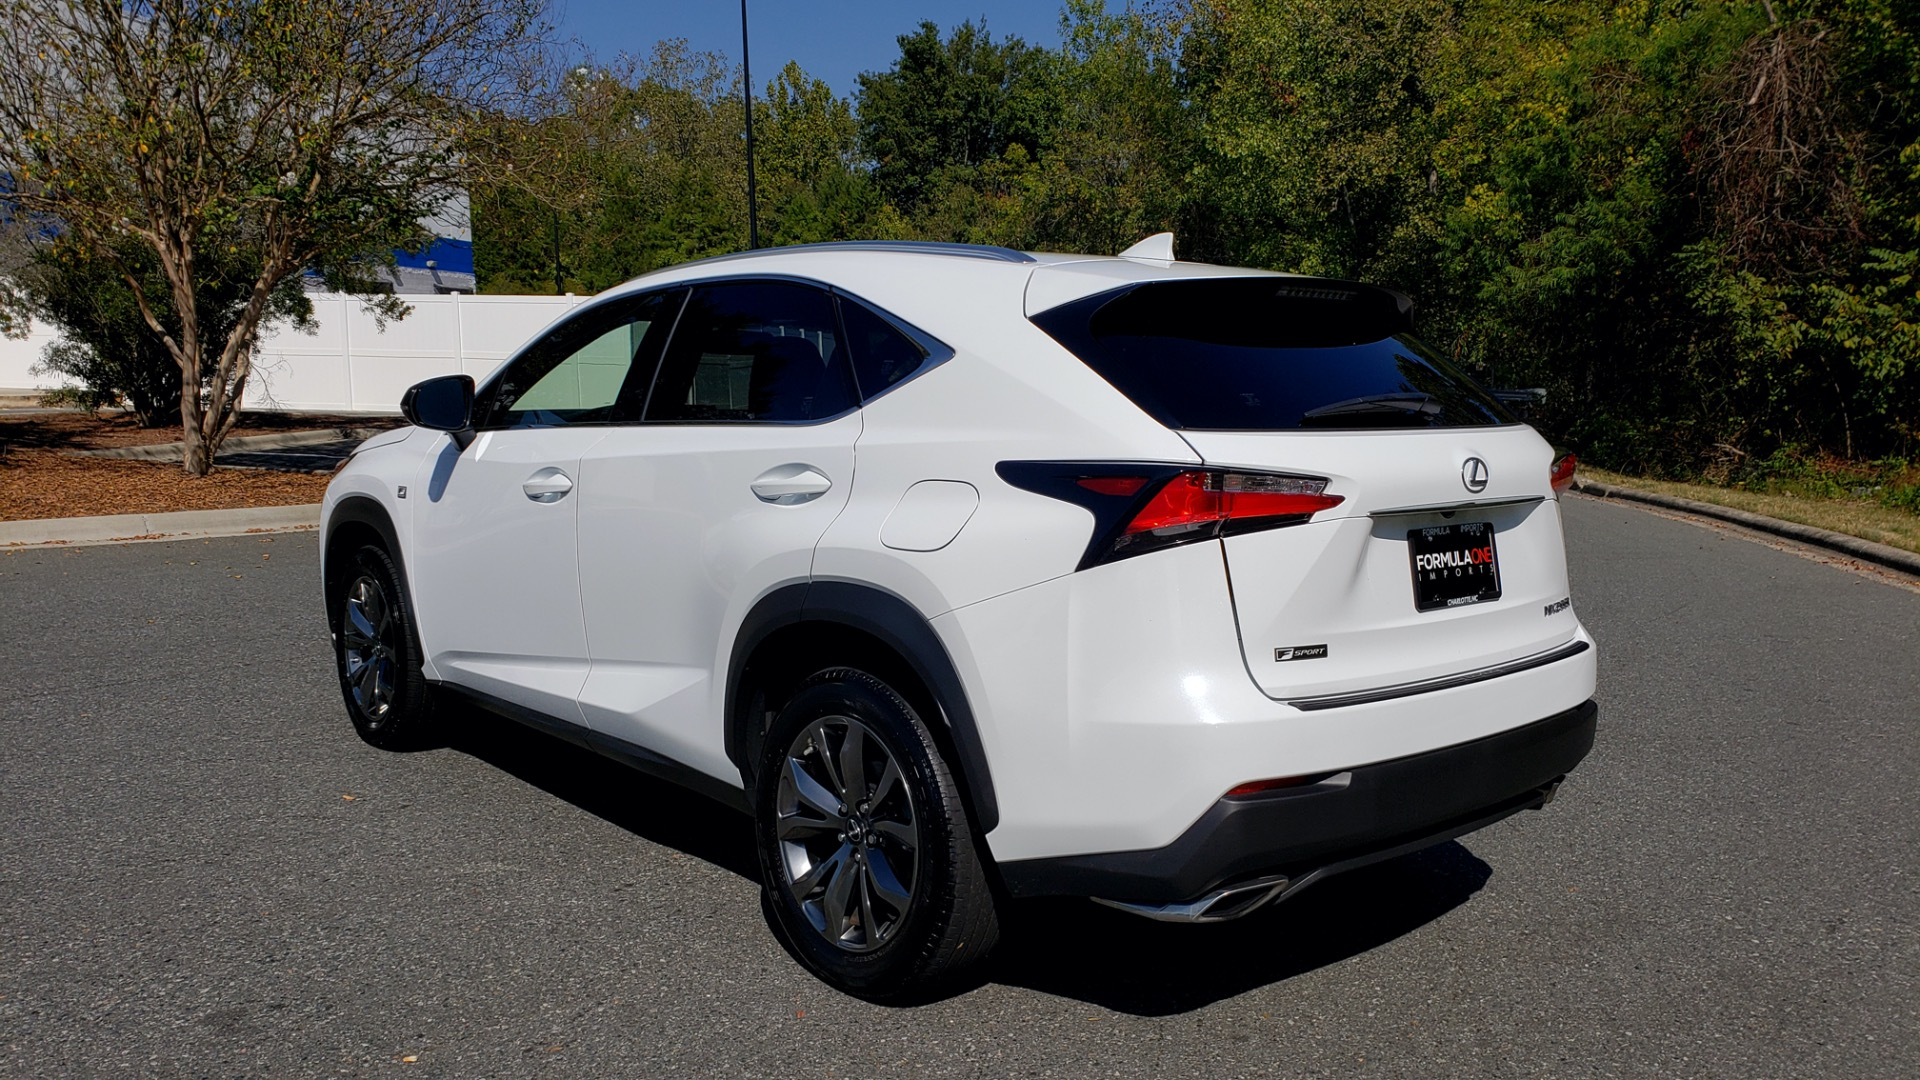 Used 2016 Lexus NX 200t F-SPORT / BACK-UP CAMERA / 18 INCH WHEELS for sale Sold at Formula Imports in Charlotte NC 28227 3